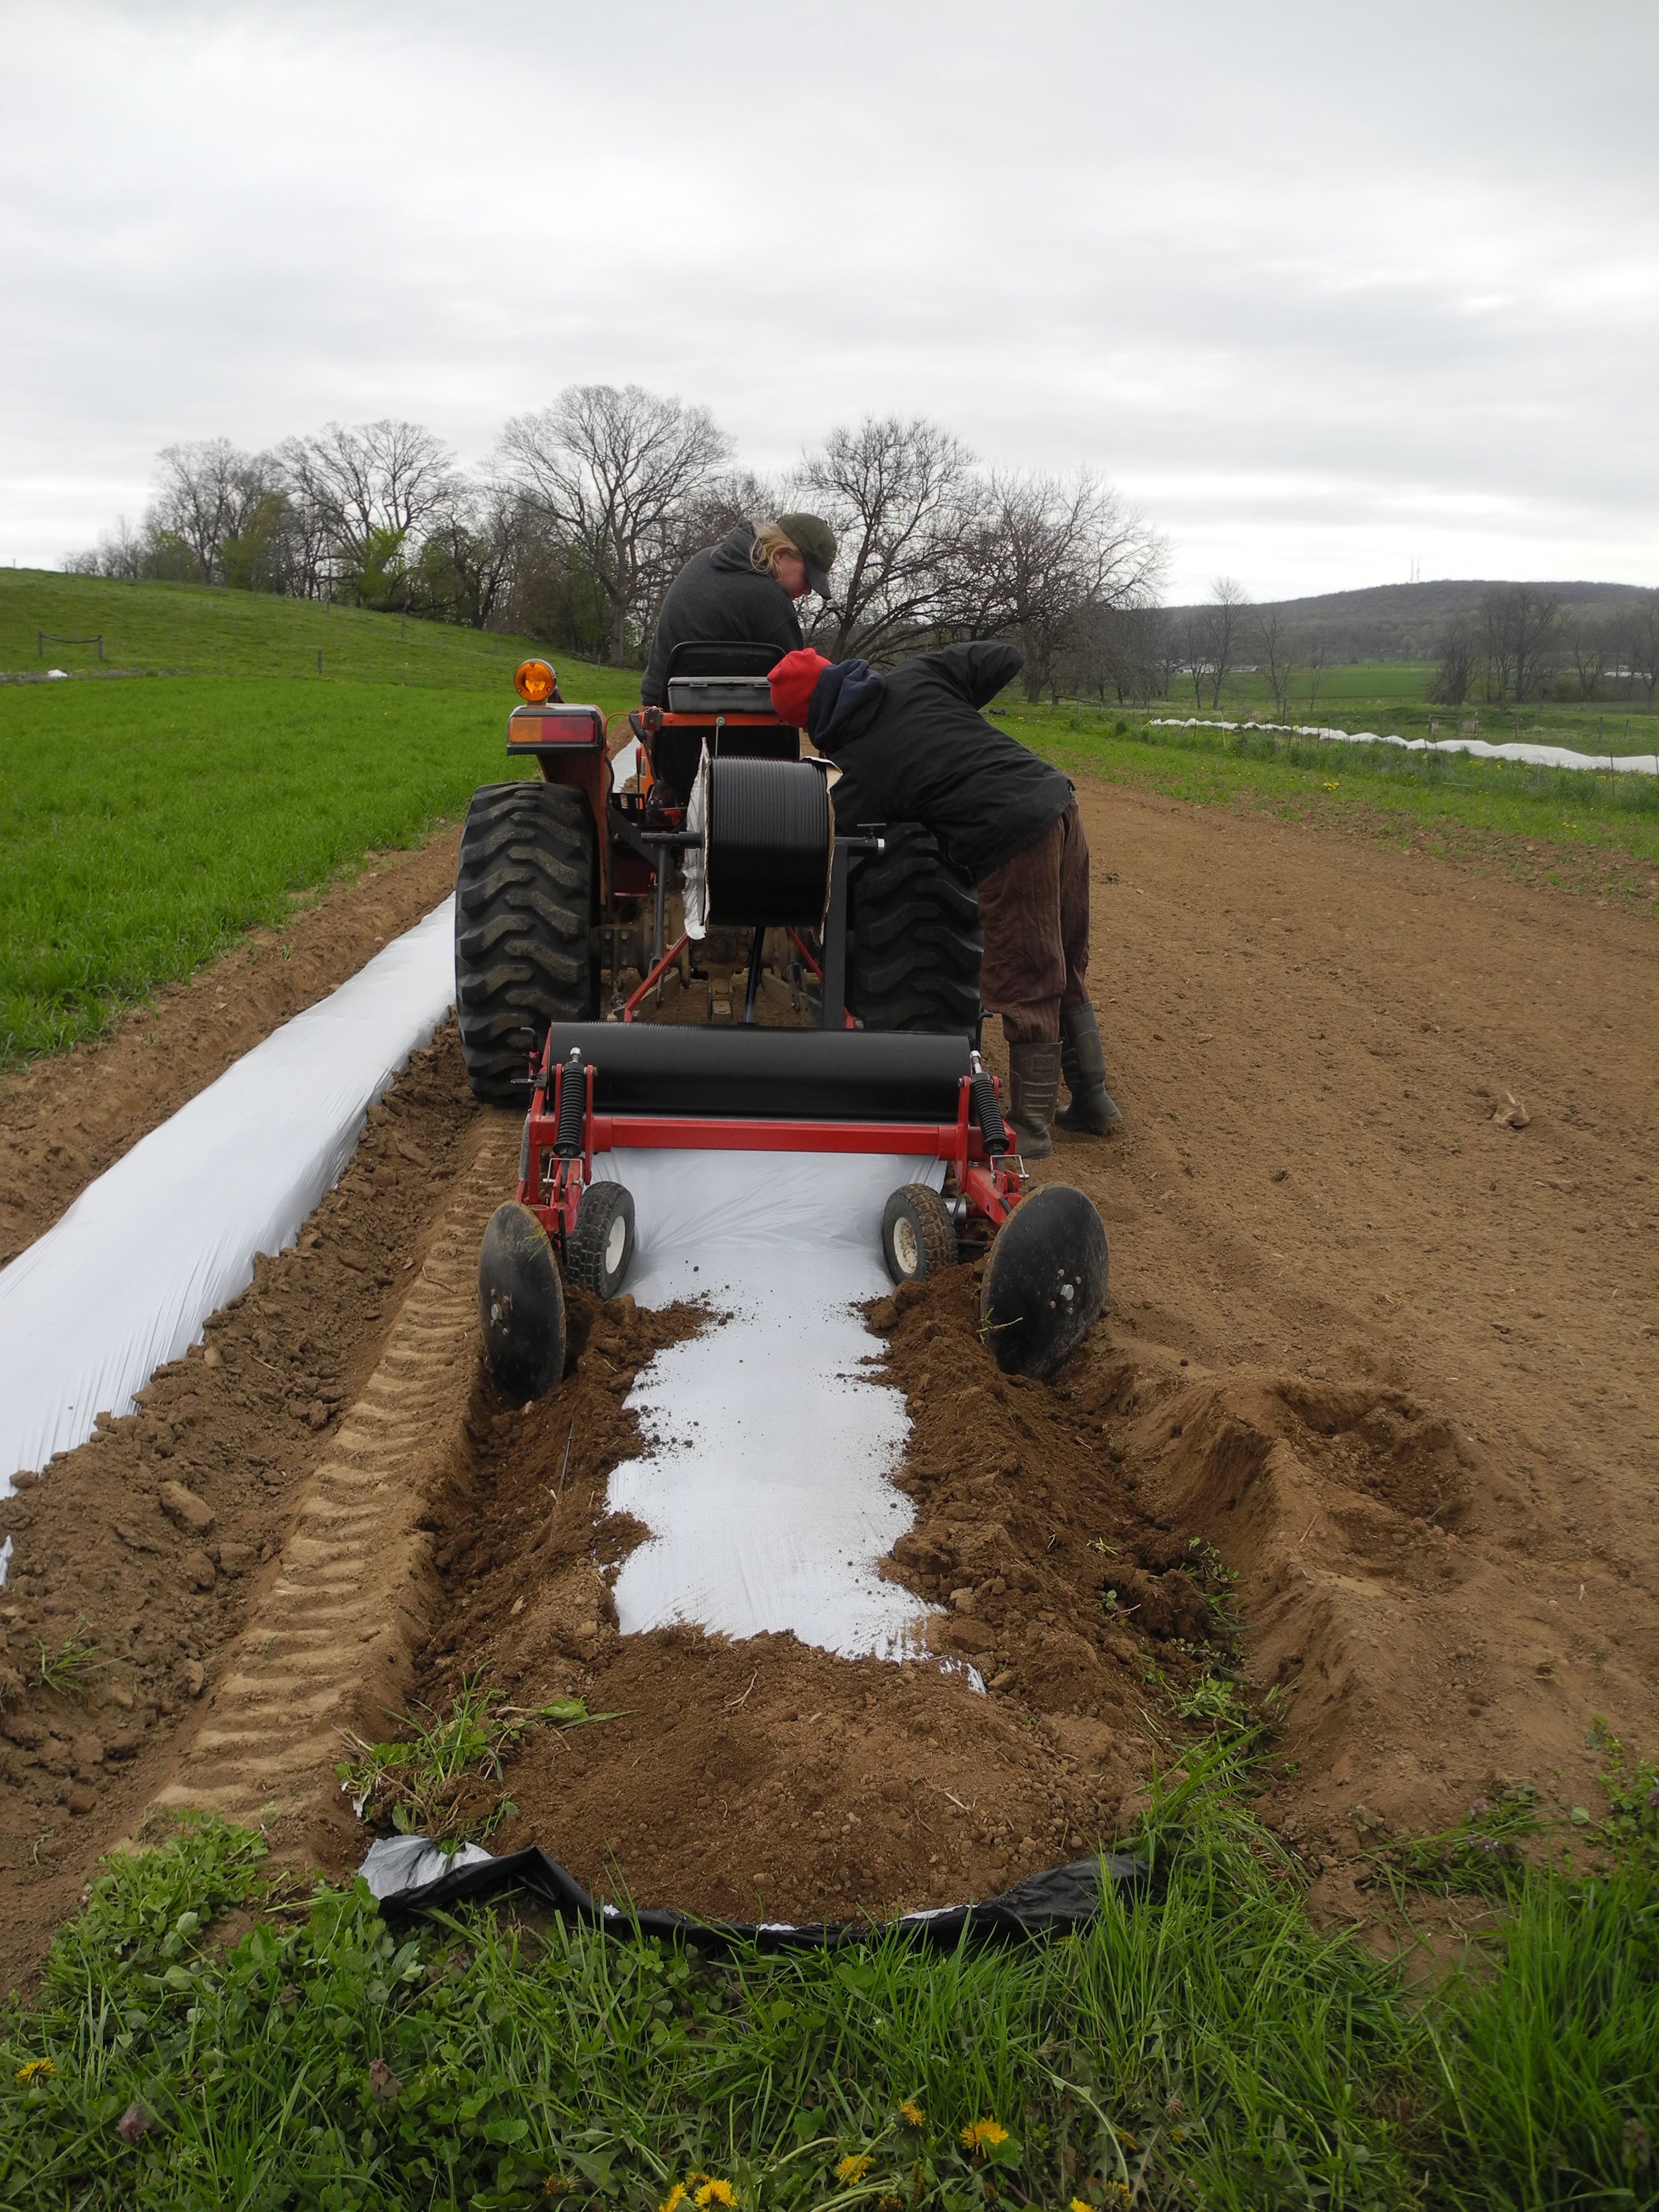 Bumps and repairs along their farming journey at B&H Organic Produce